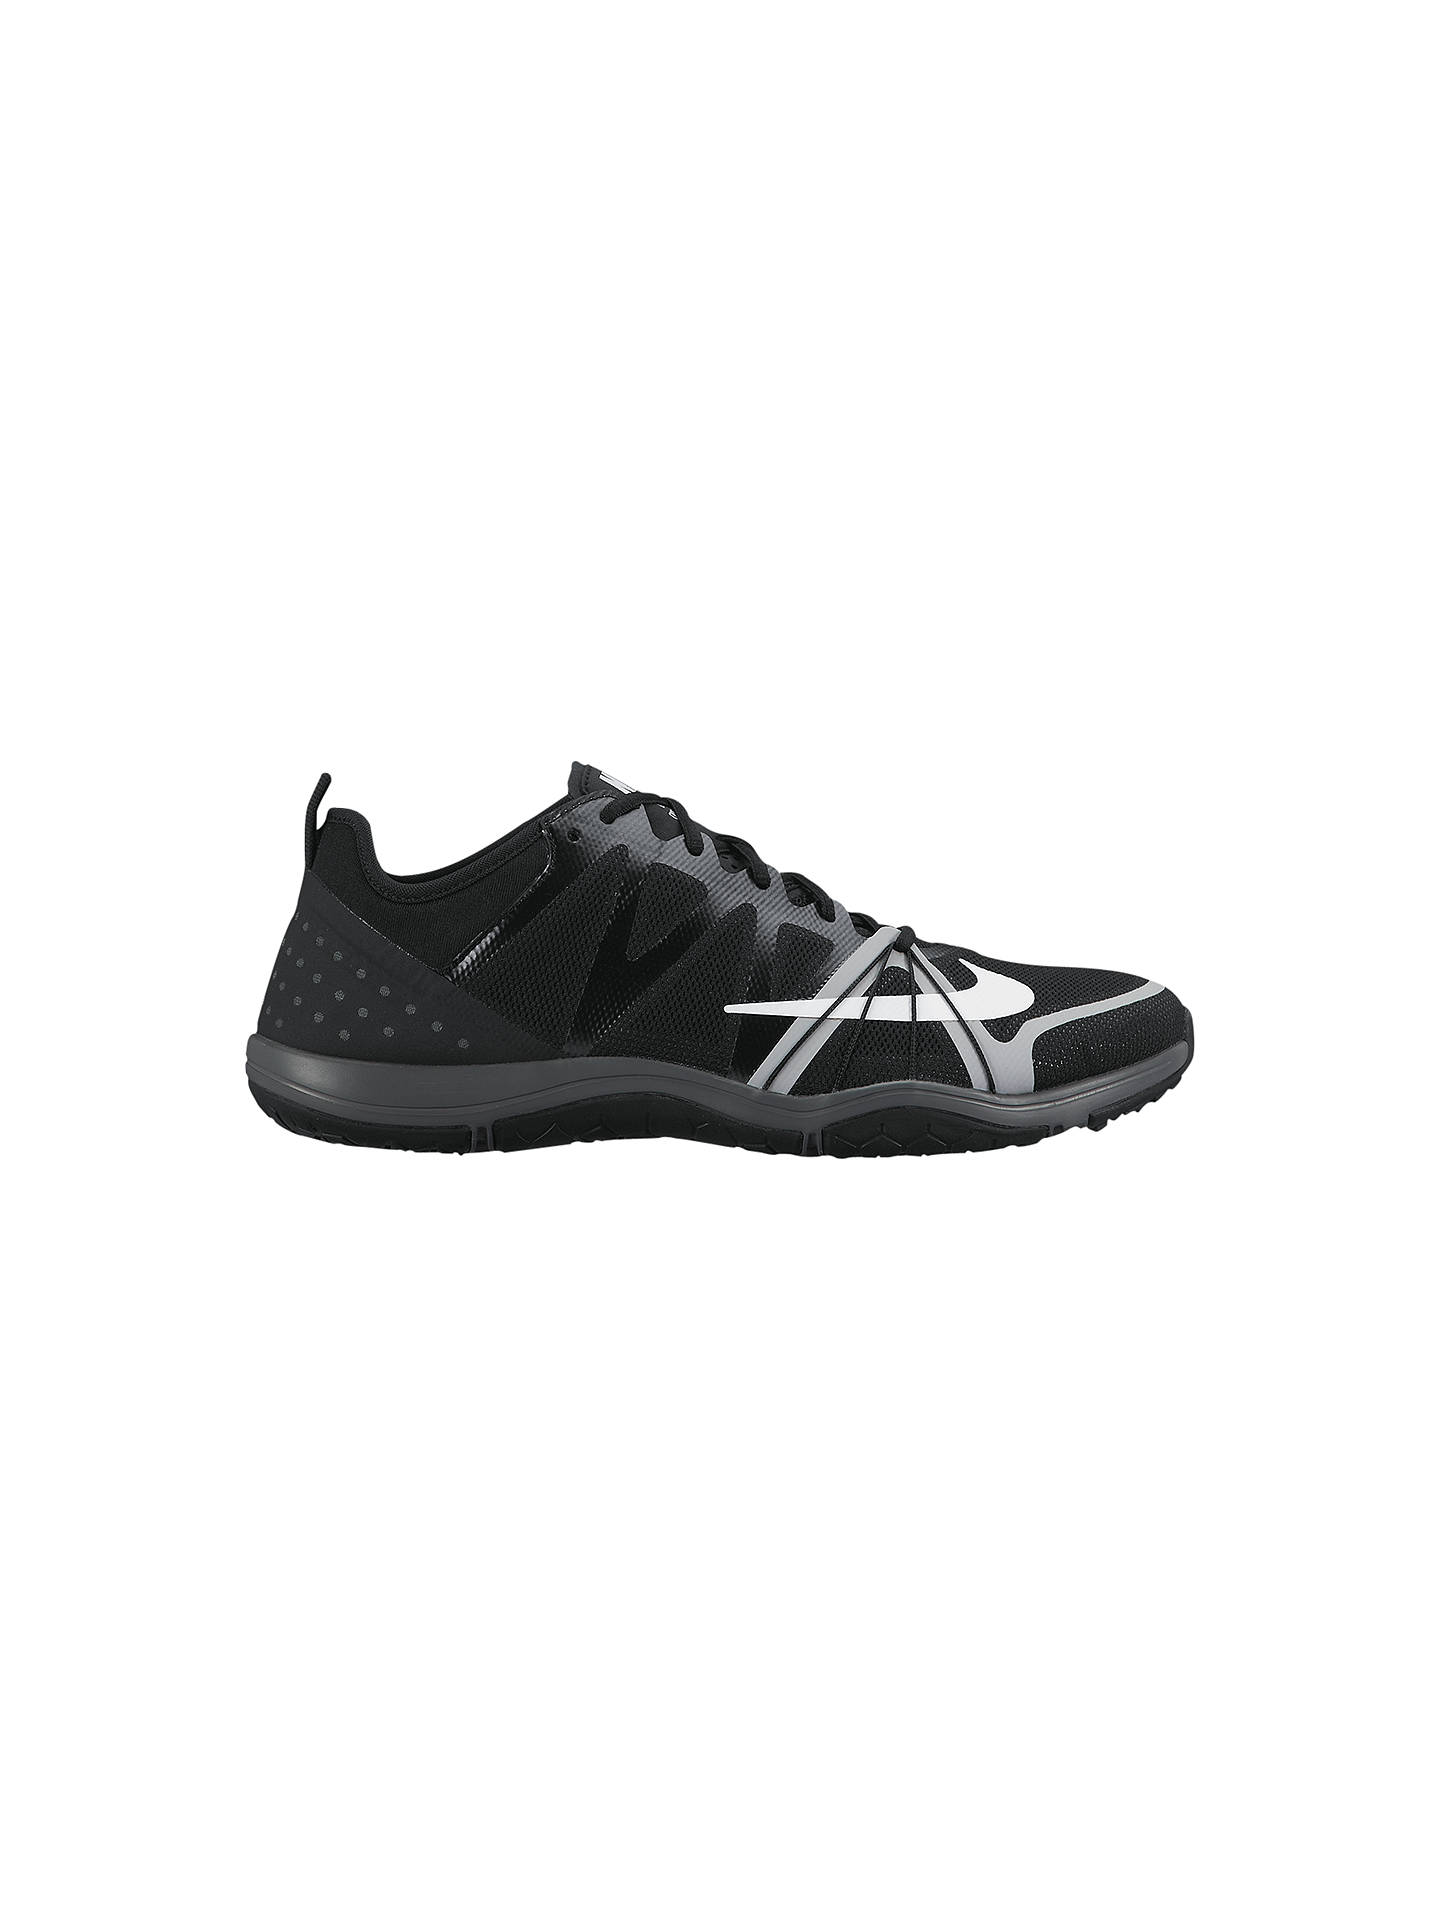 new product e1834 b2c90 Buy Nike Free Compete Women's Cross Trainers, Black/White, 4 Online at  johnlewis ...